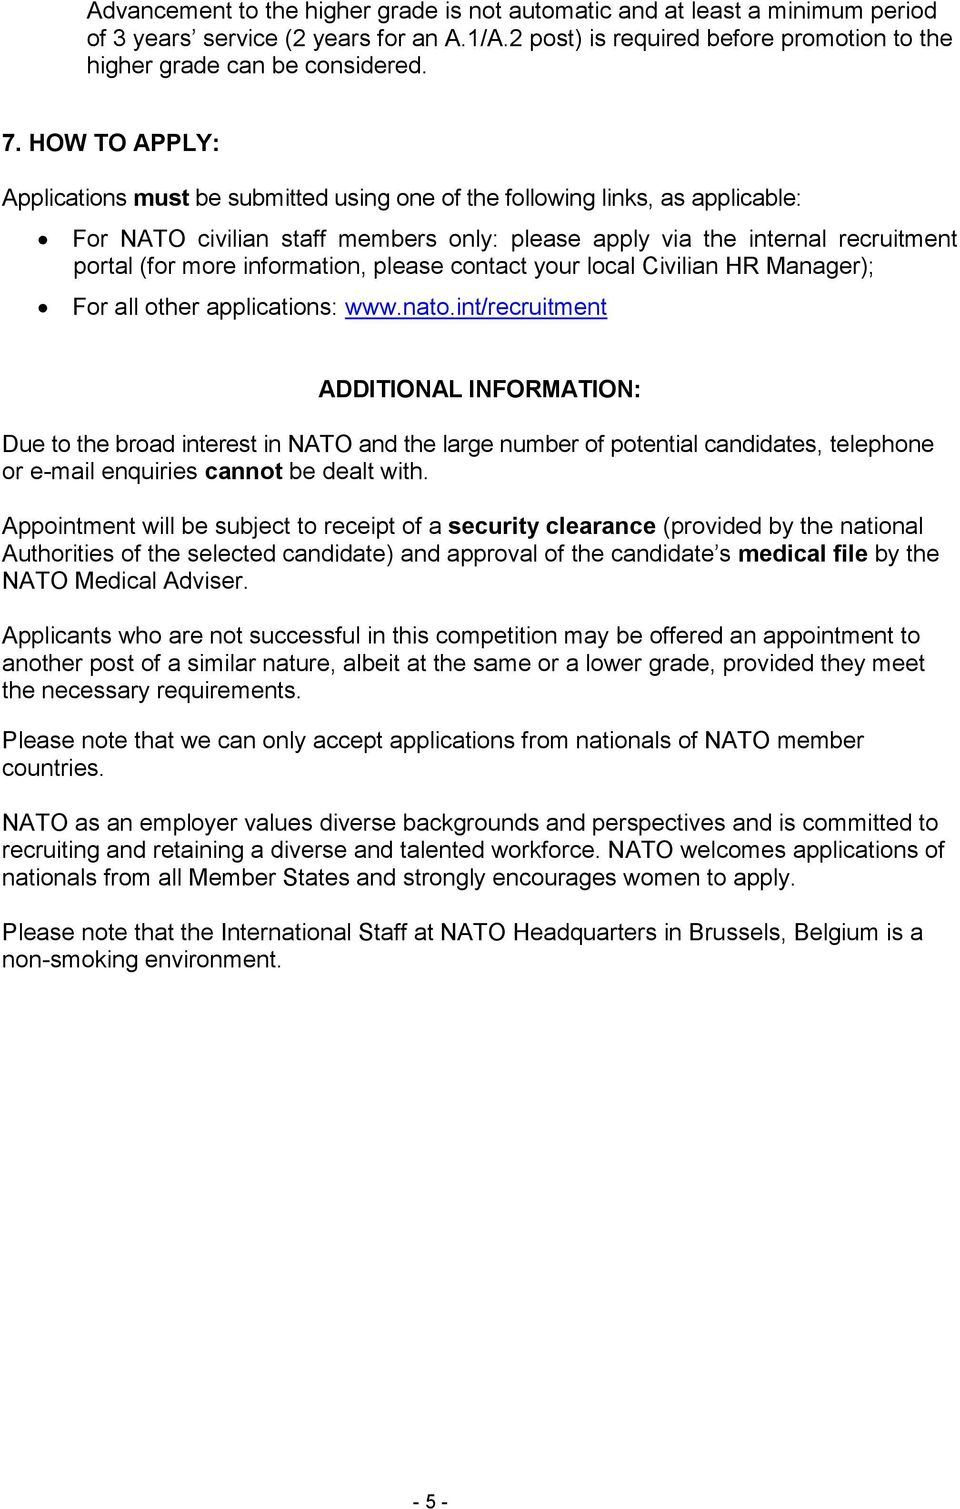 information, please contact your local Civilian HR Manager); For all other applications: www.nato.